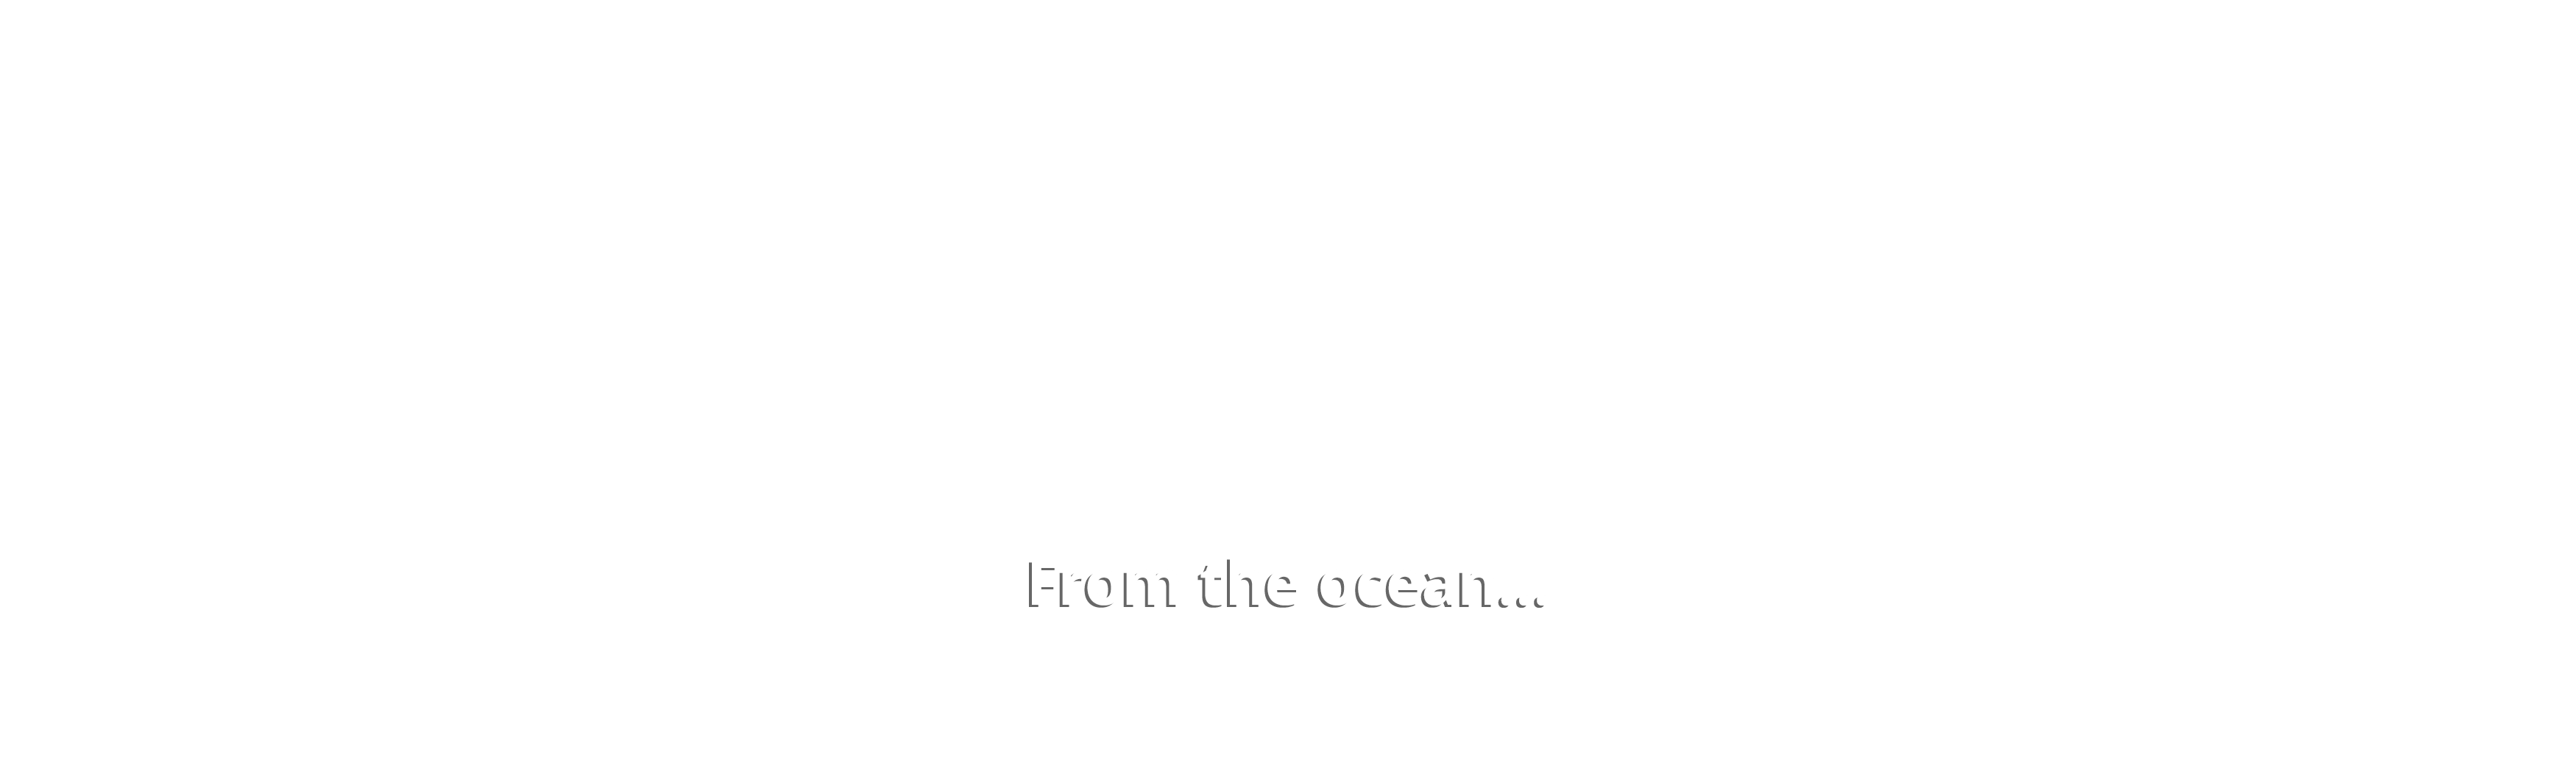 From the ocean